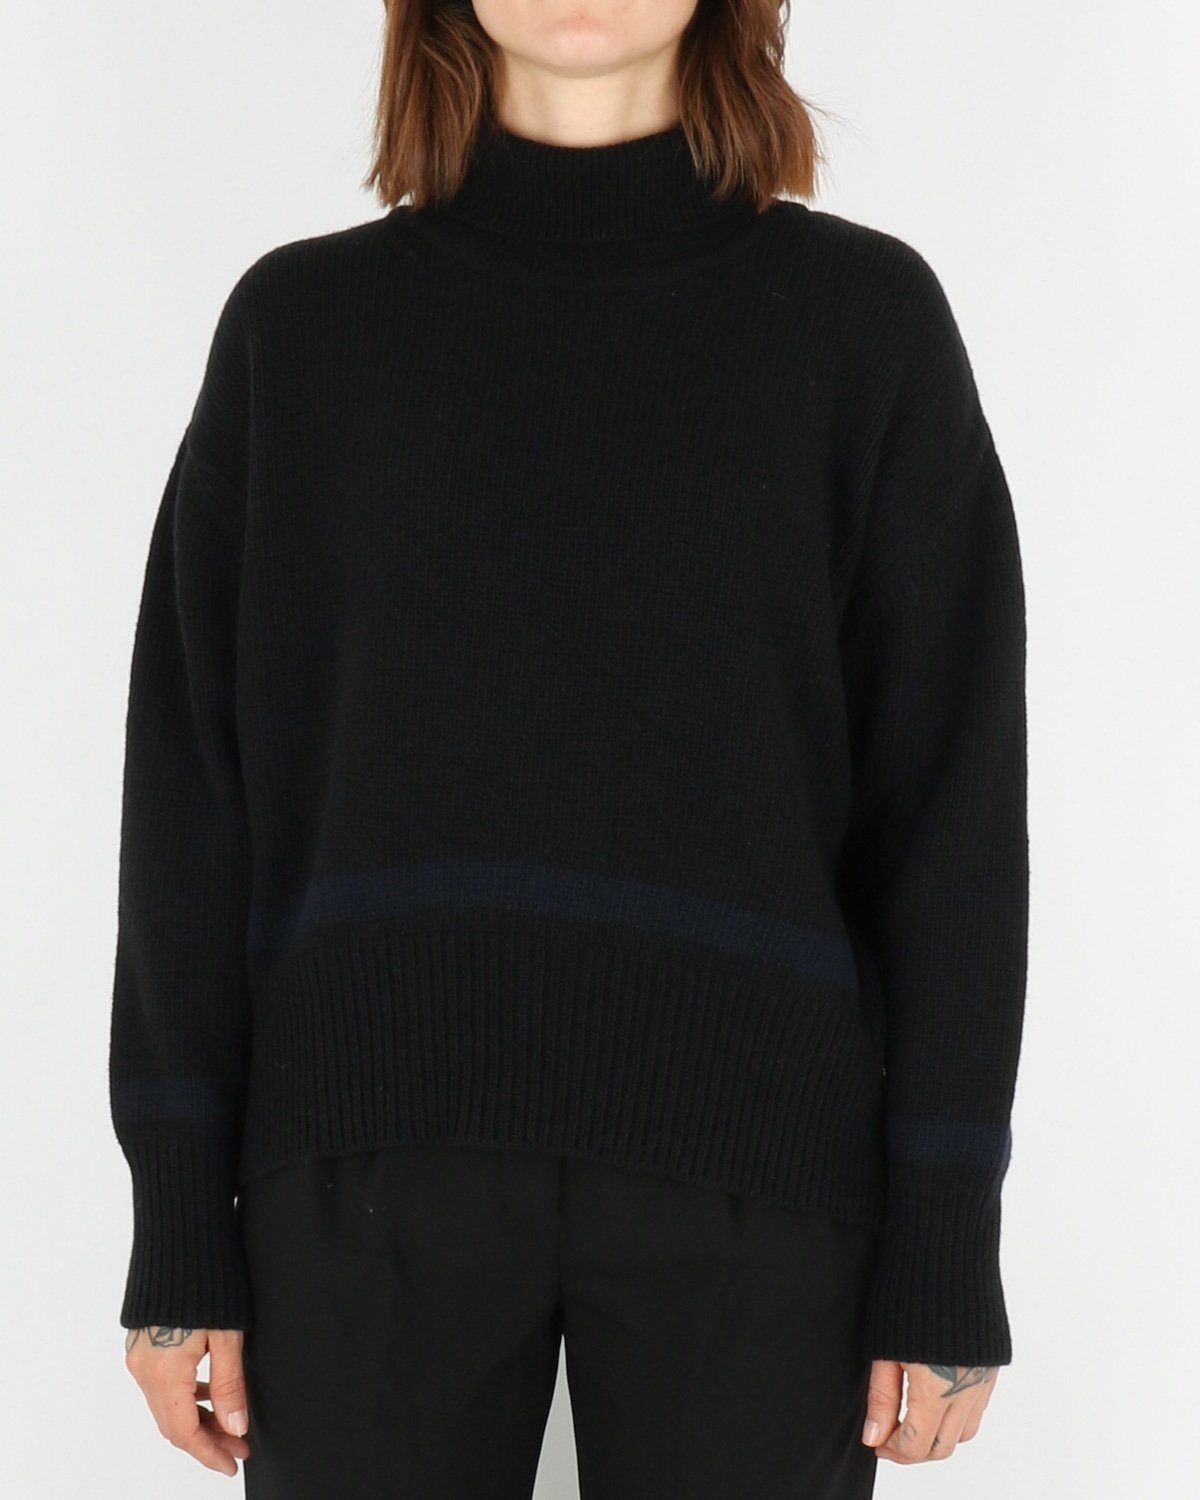 libertine libertine_husky knit_black blue_1_4